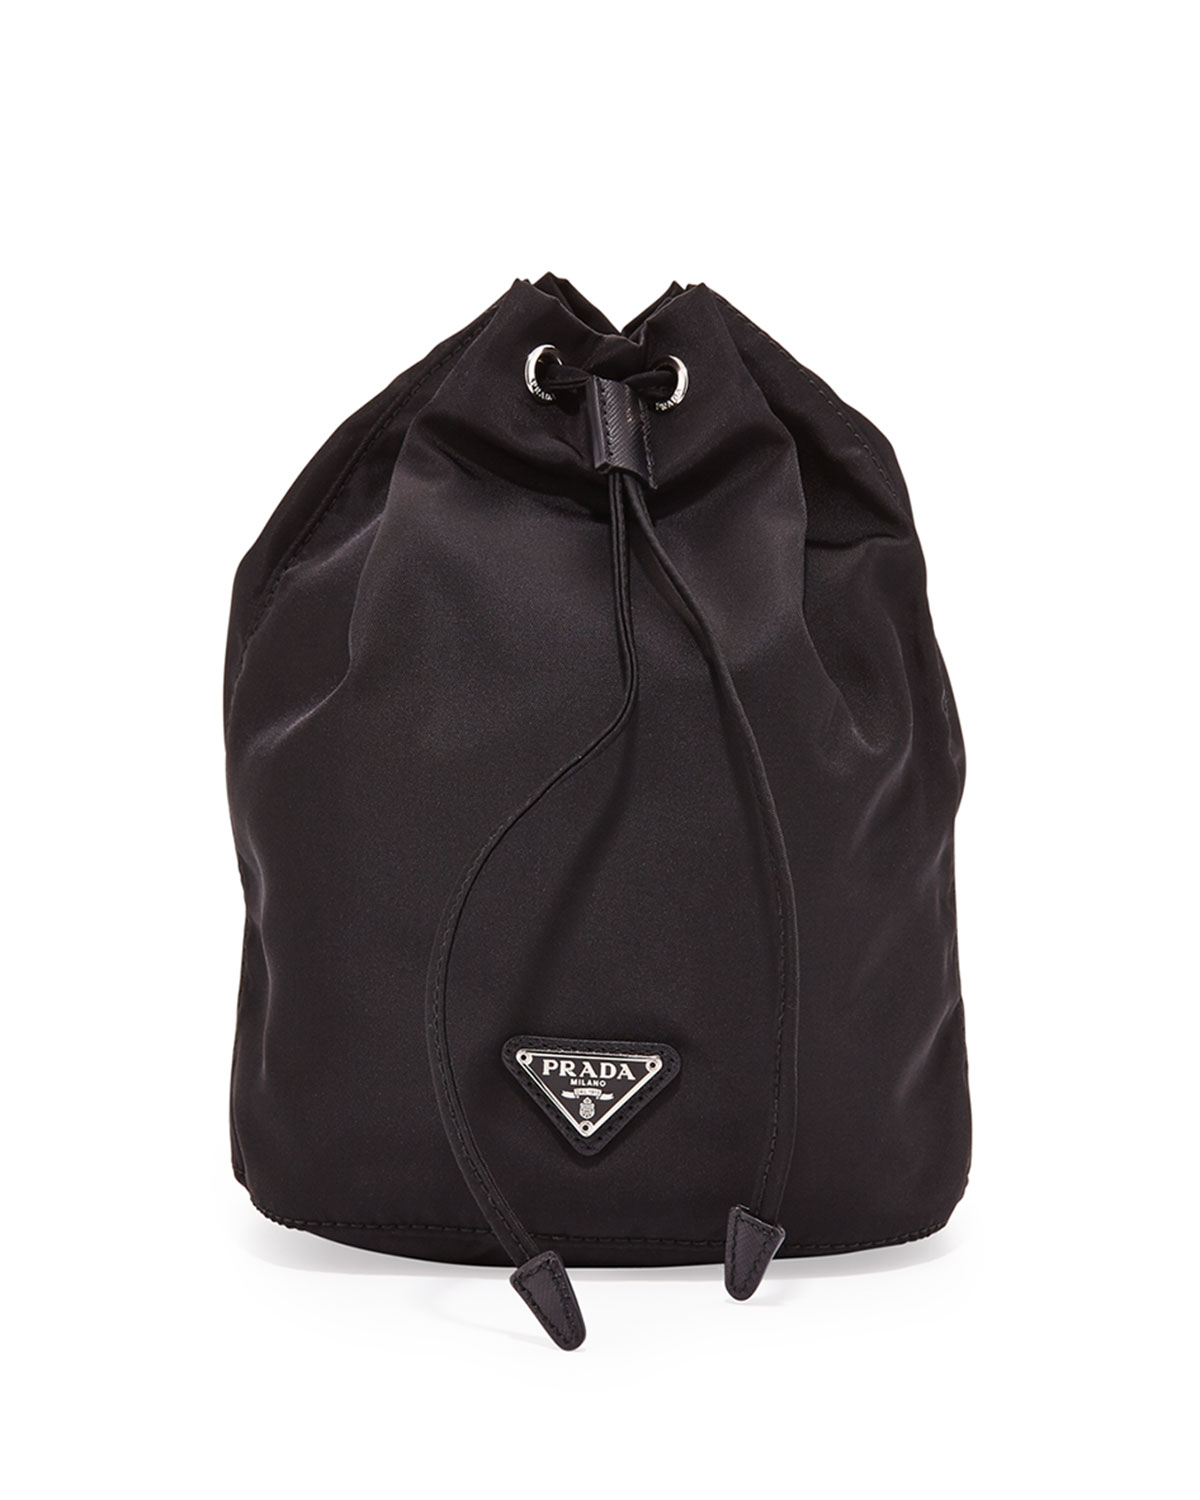 Prada Nylon Bucket Bag Neiman Marcus